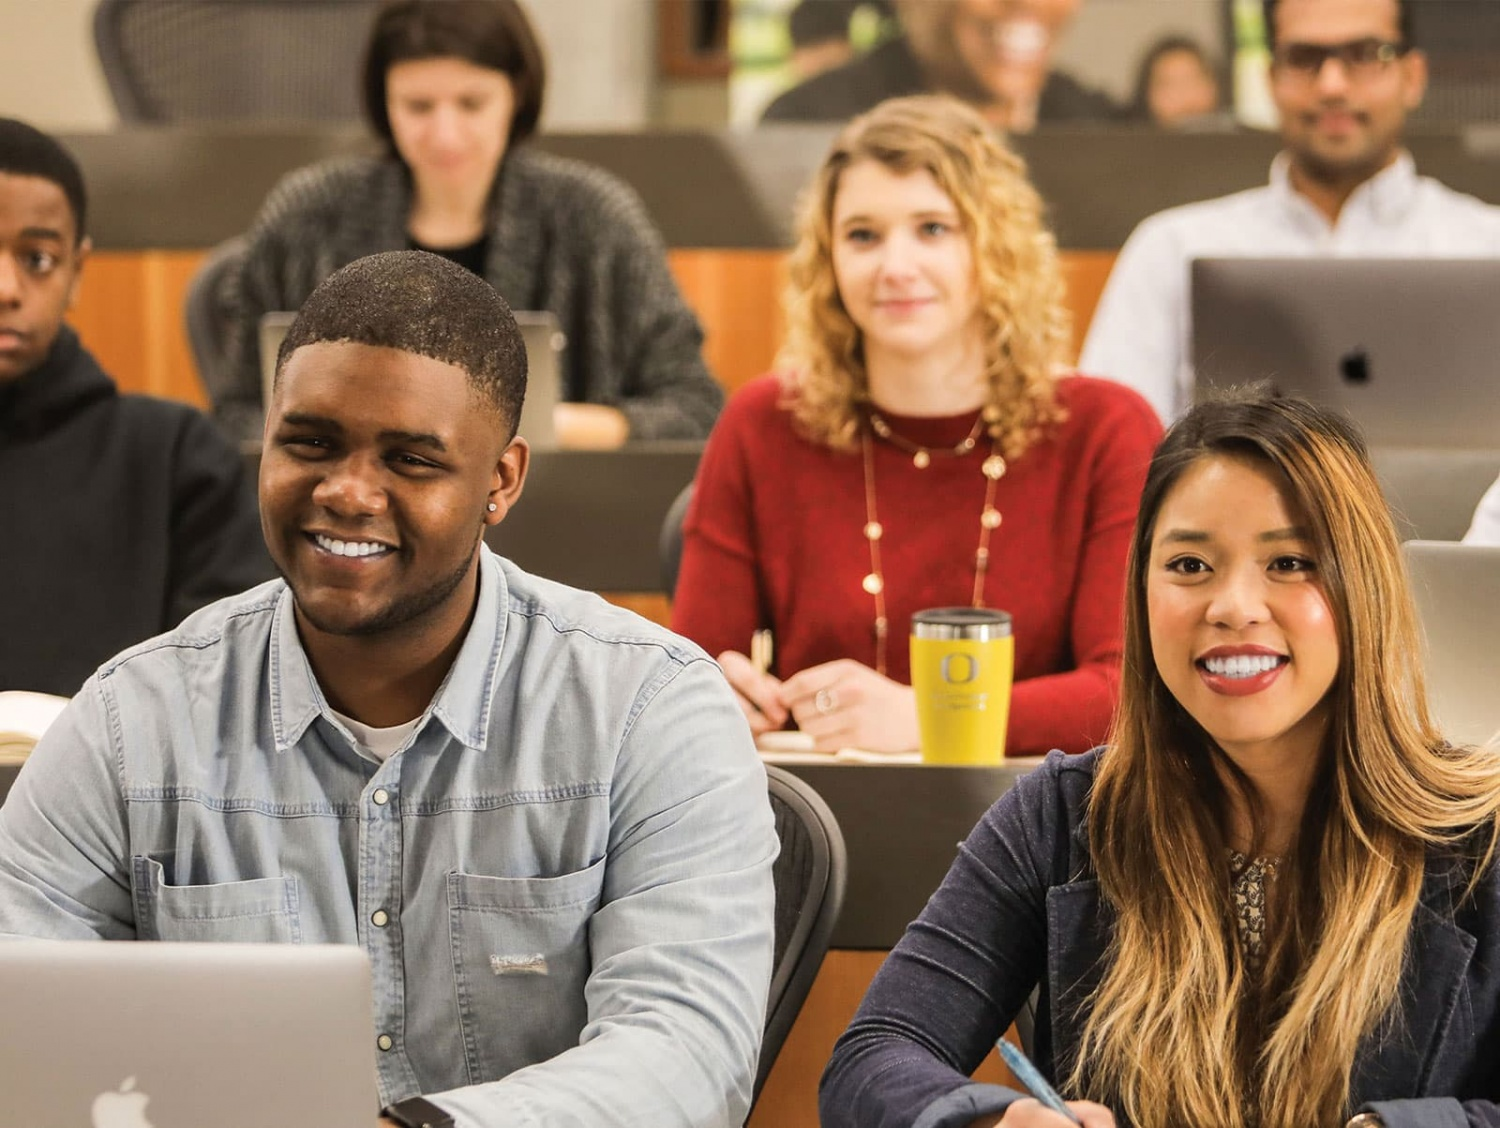 Sports Product Management students in class facing the camera and smiling in response to a professors point